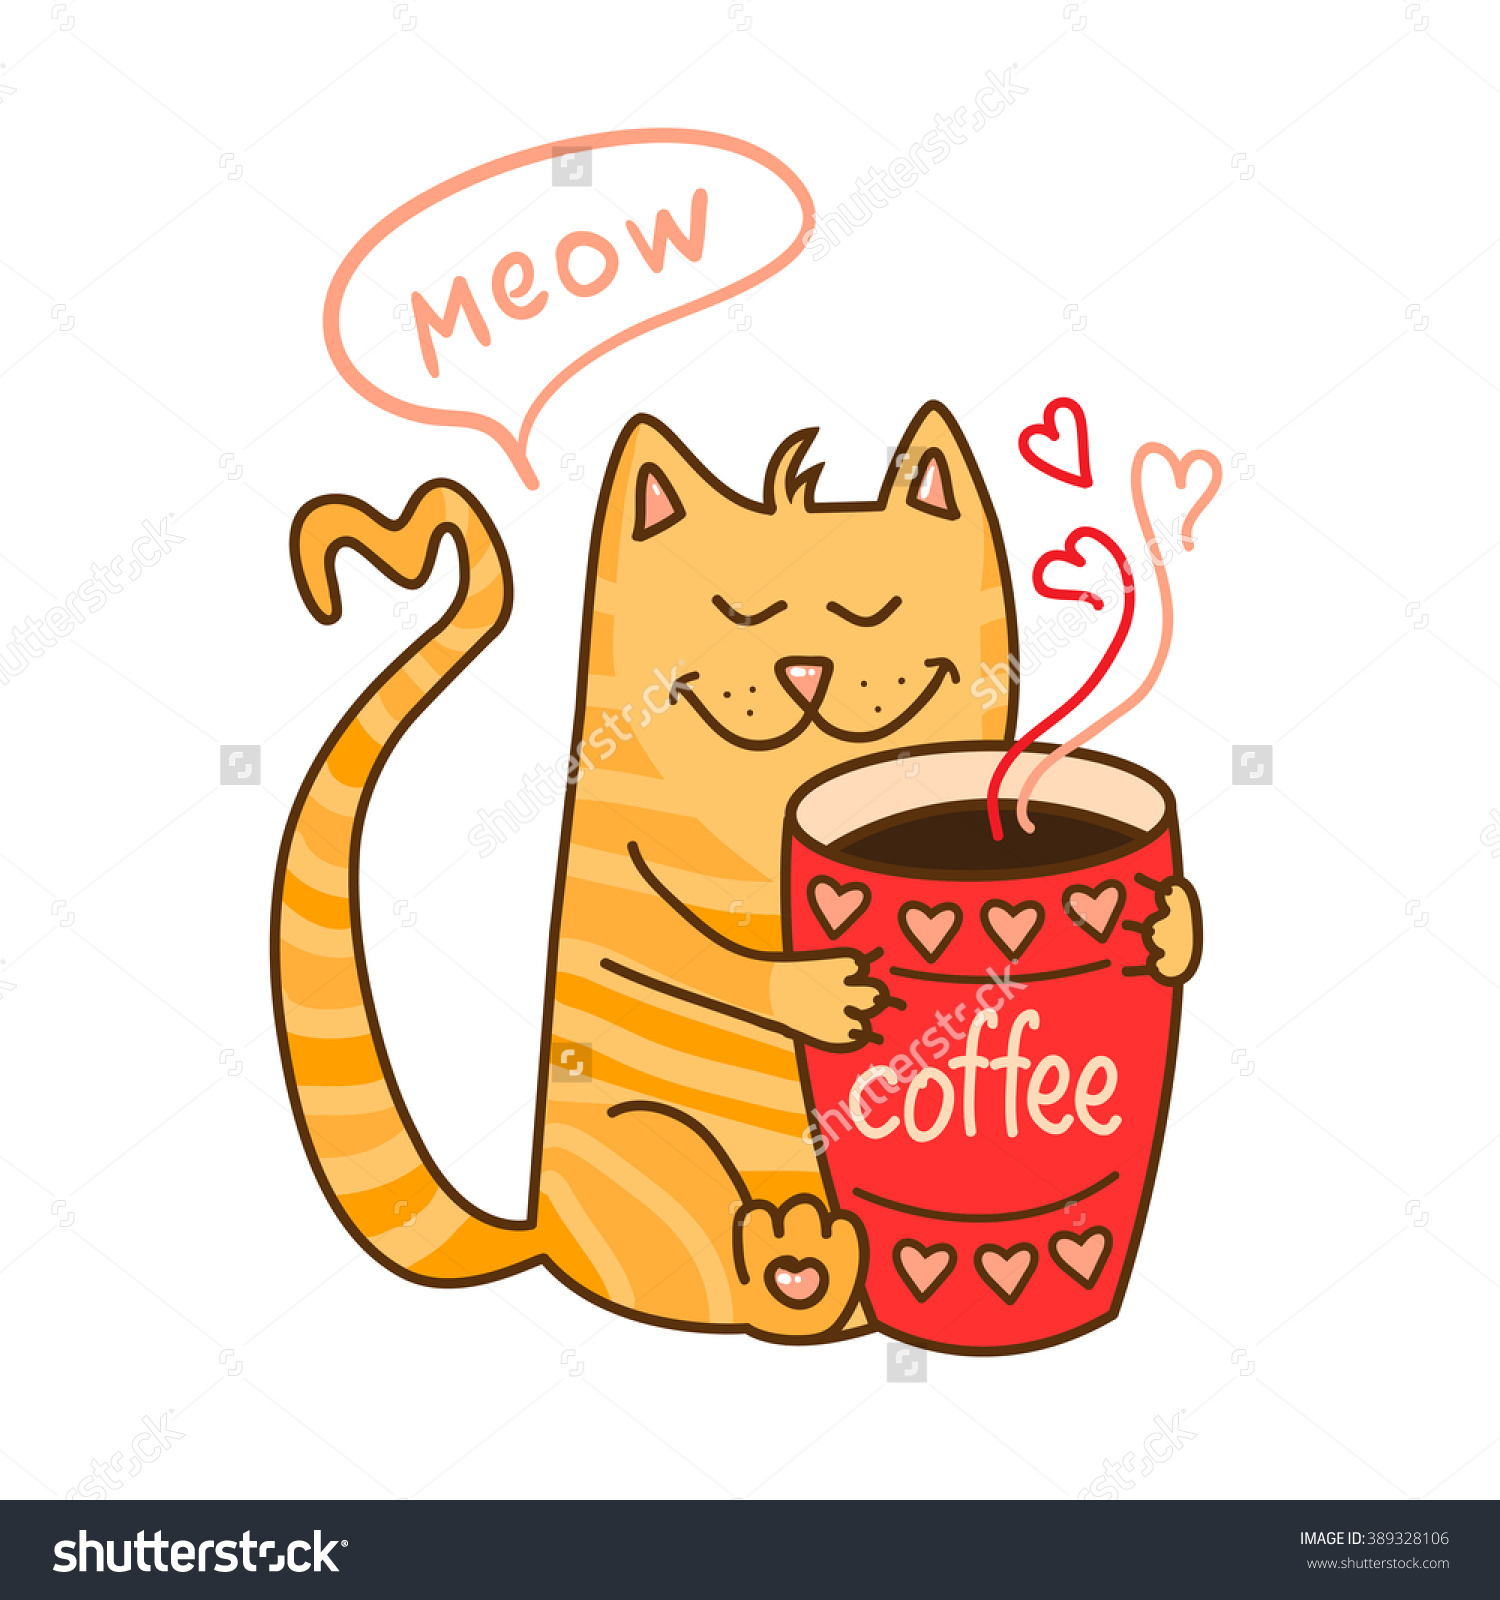 Coffee clipart cartoon Cat Coffee Cute clipart Cartoon